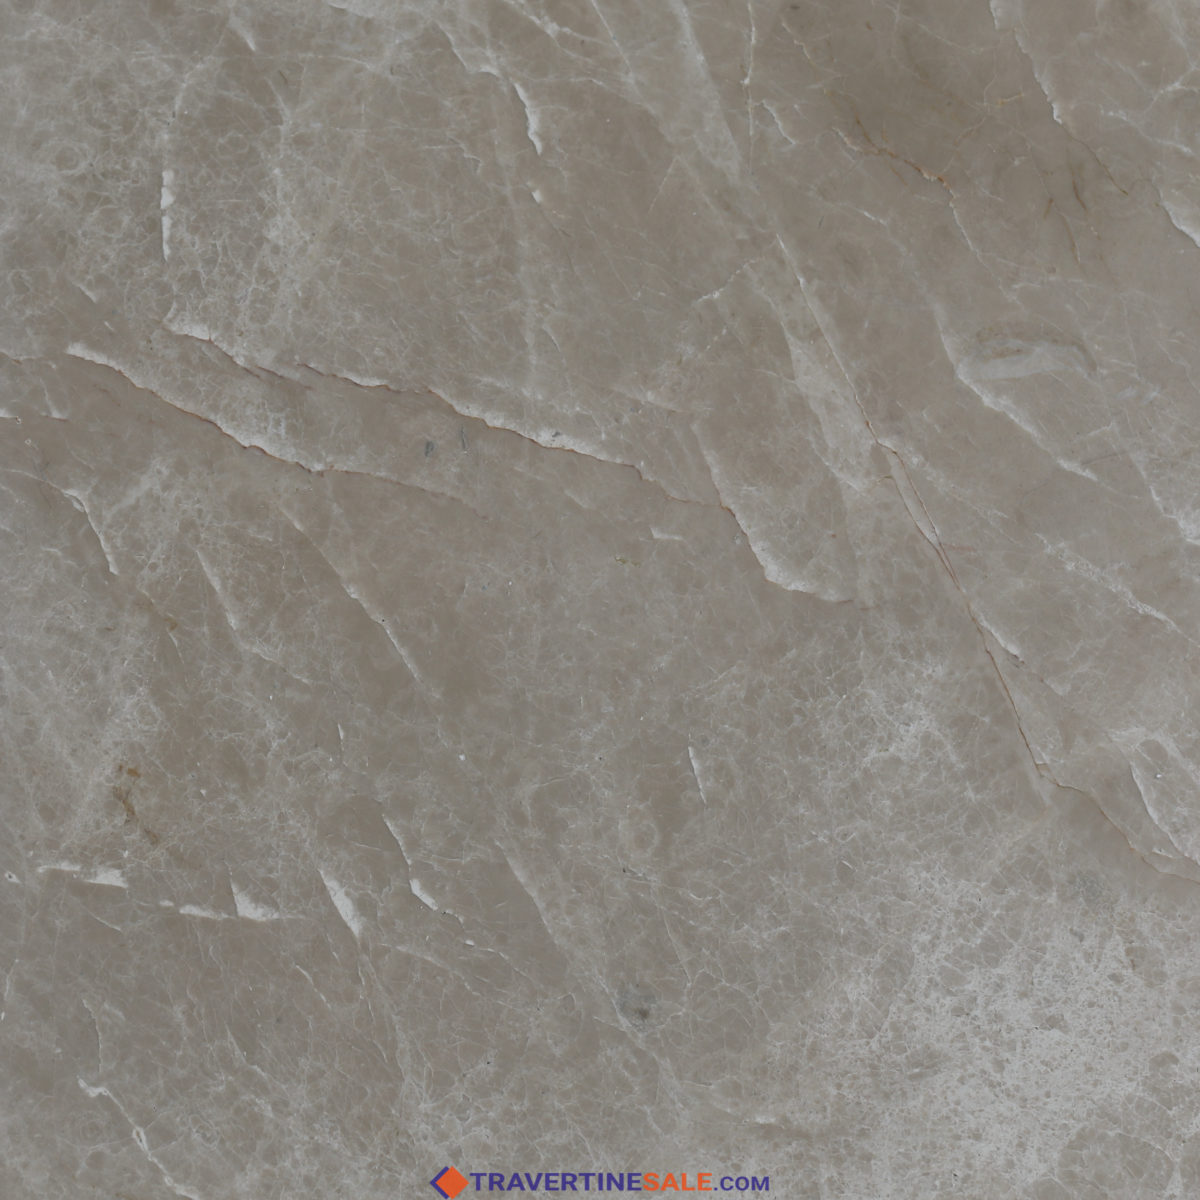 polished montana marble tile surface with beige background and white lines